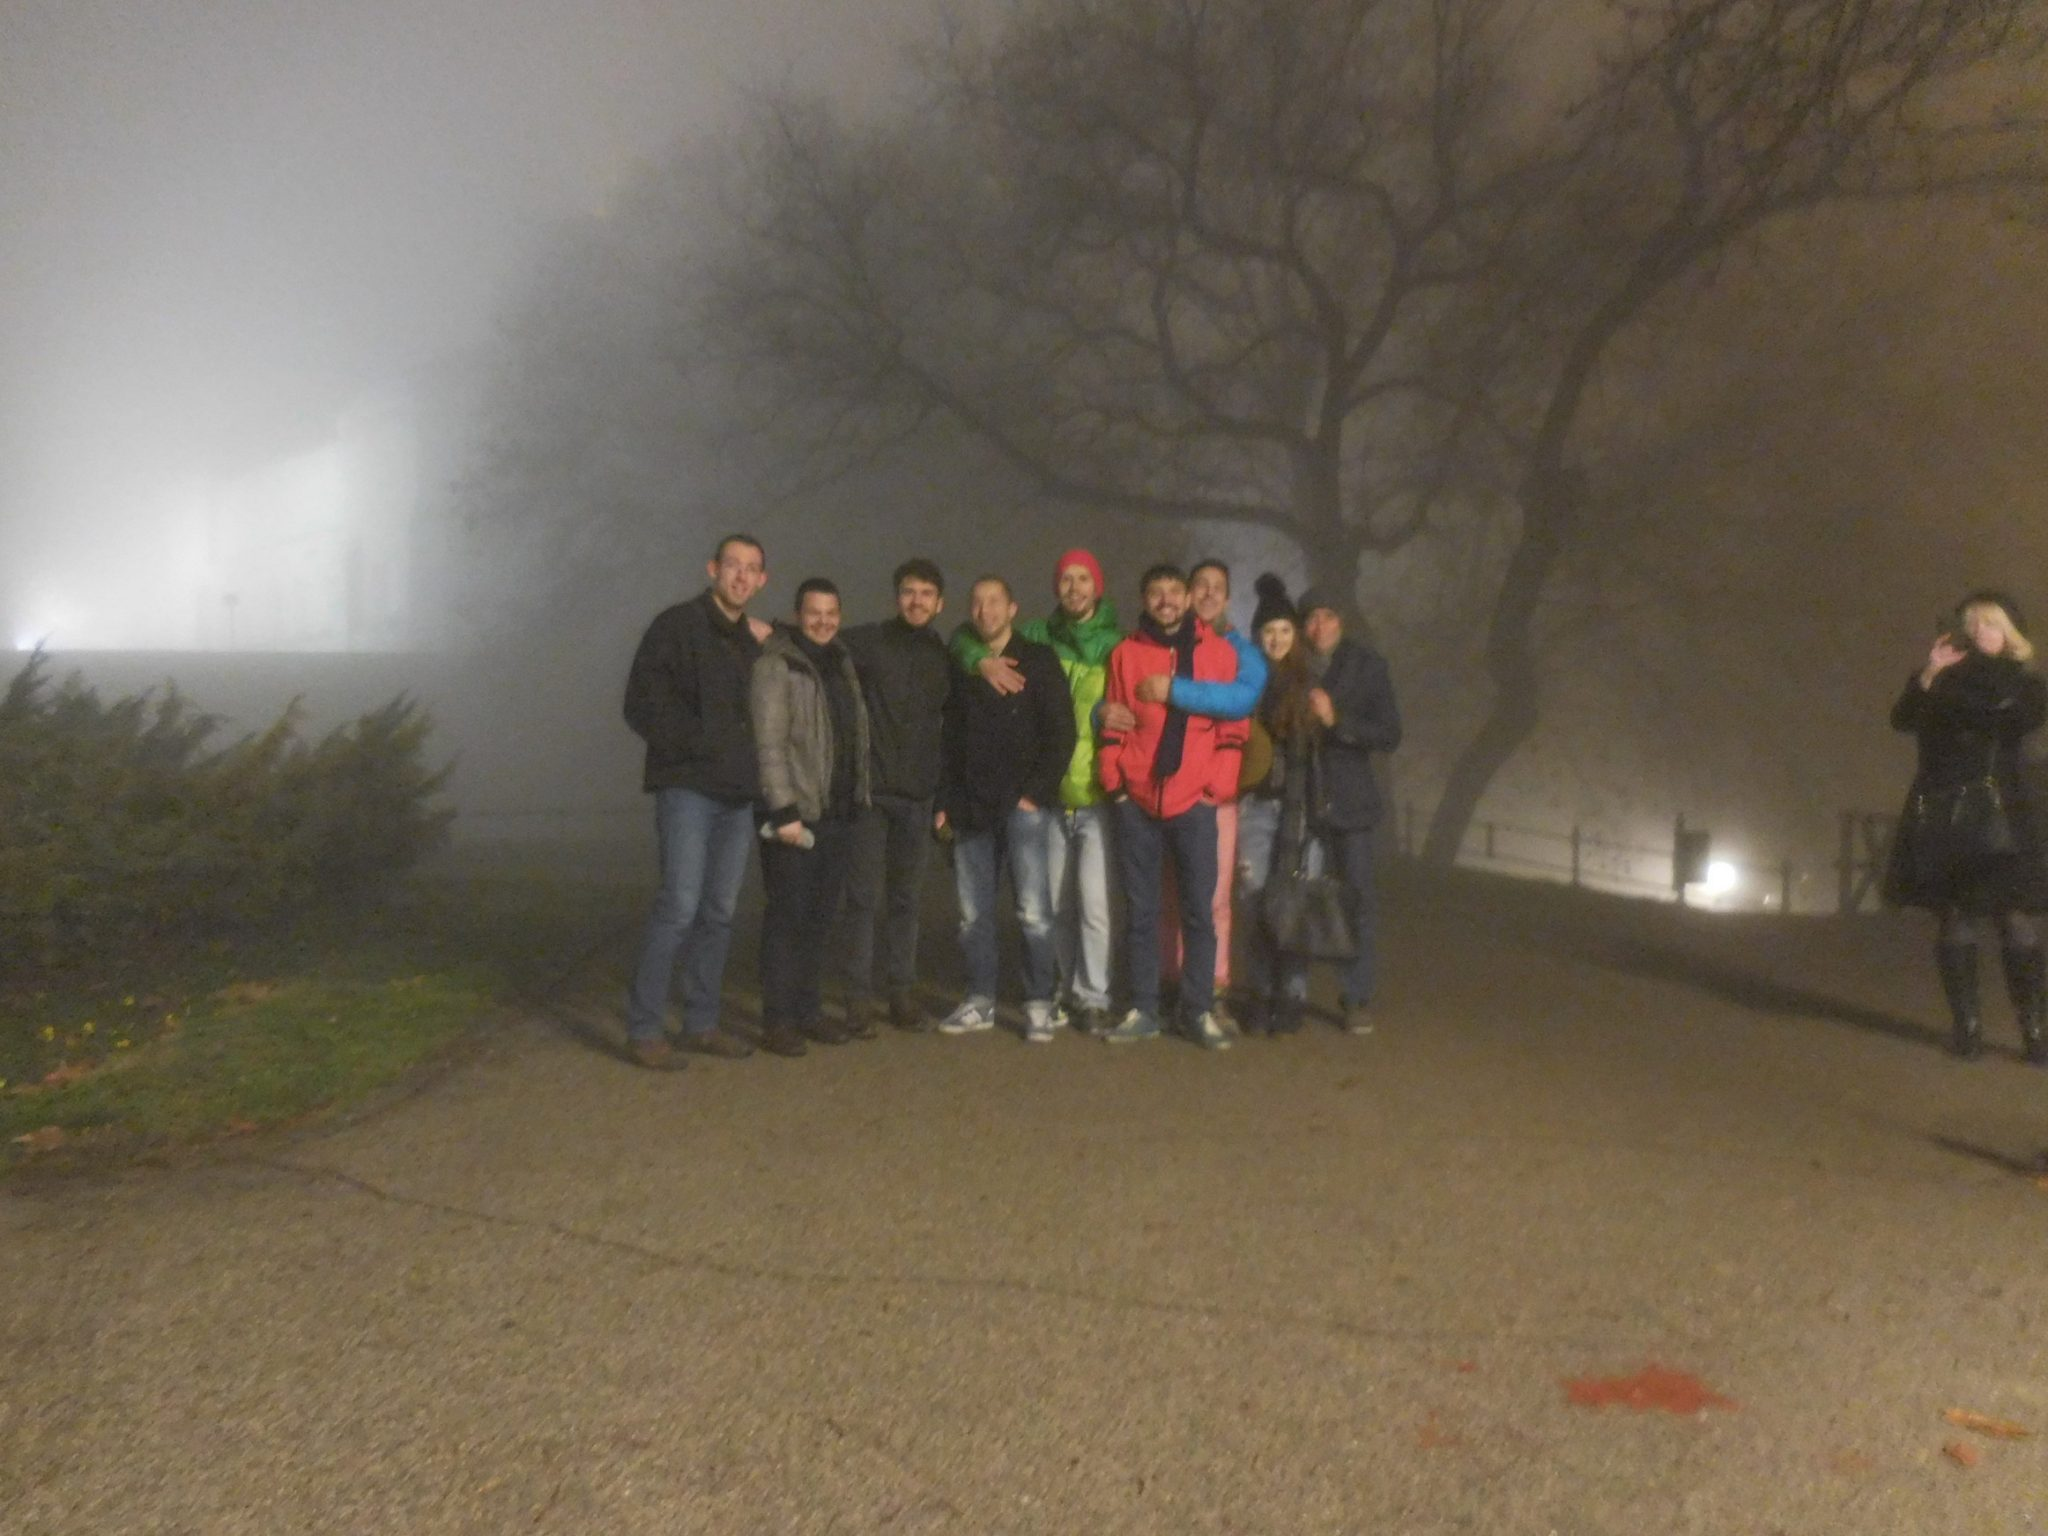 Belgrade, Kalemegdan, Foggy, the Group